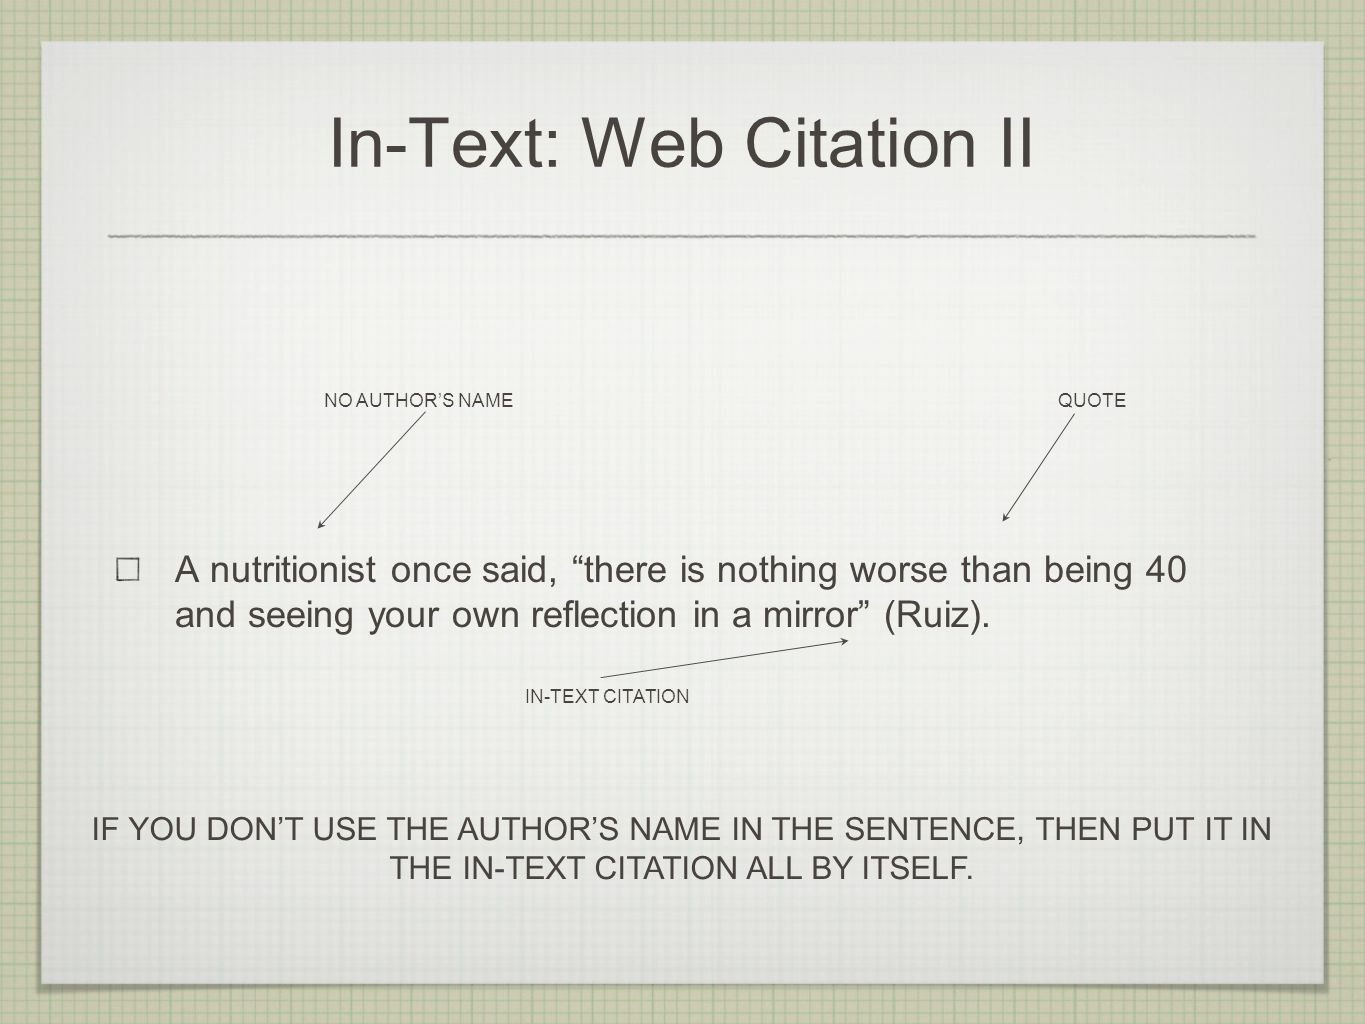 In-Text: Web Citation II A nutritionist once said, there is nothing worse than being 40 and seeing your own reflection in a mirror (Ruiz).